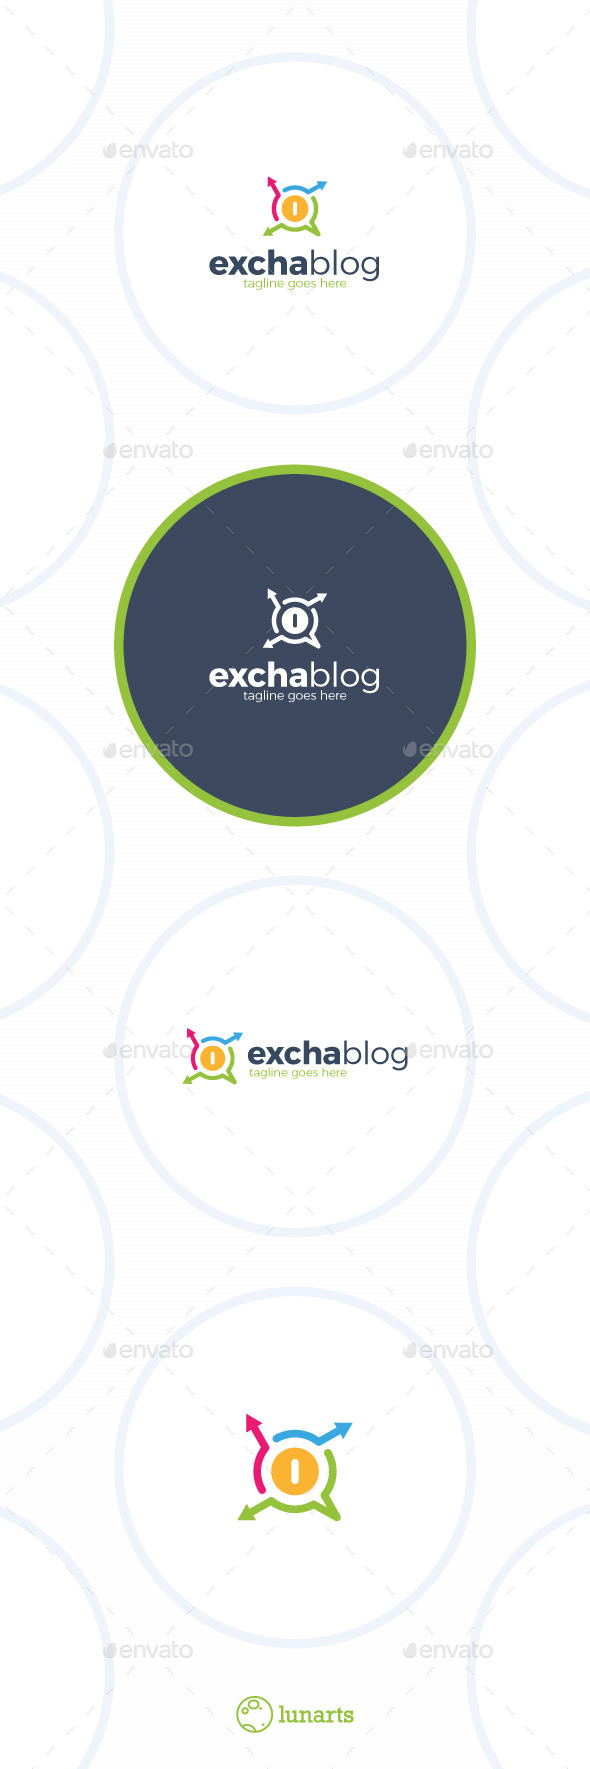 Exchange Blog Logo Changer Chat